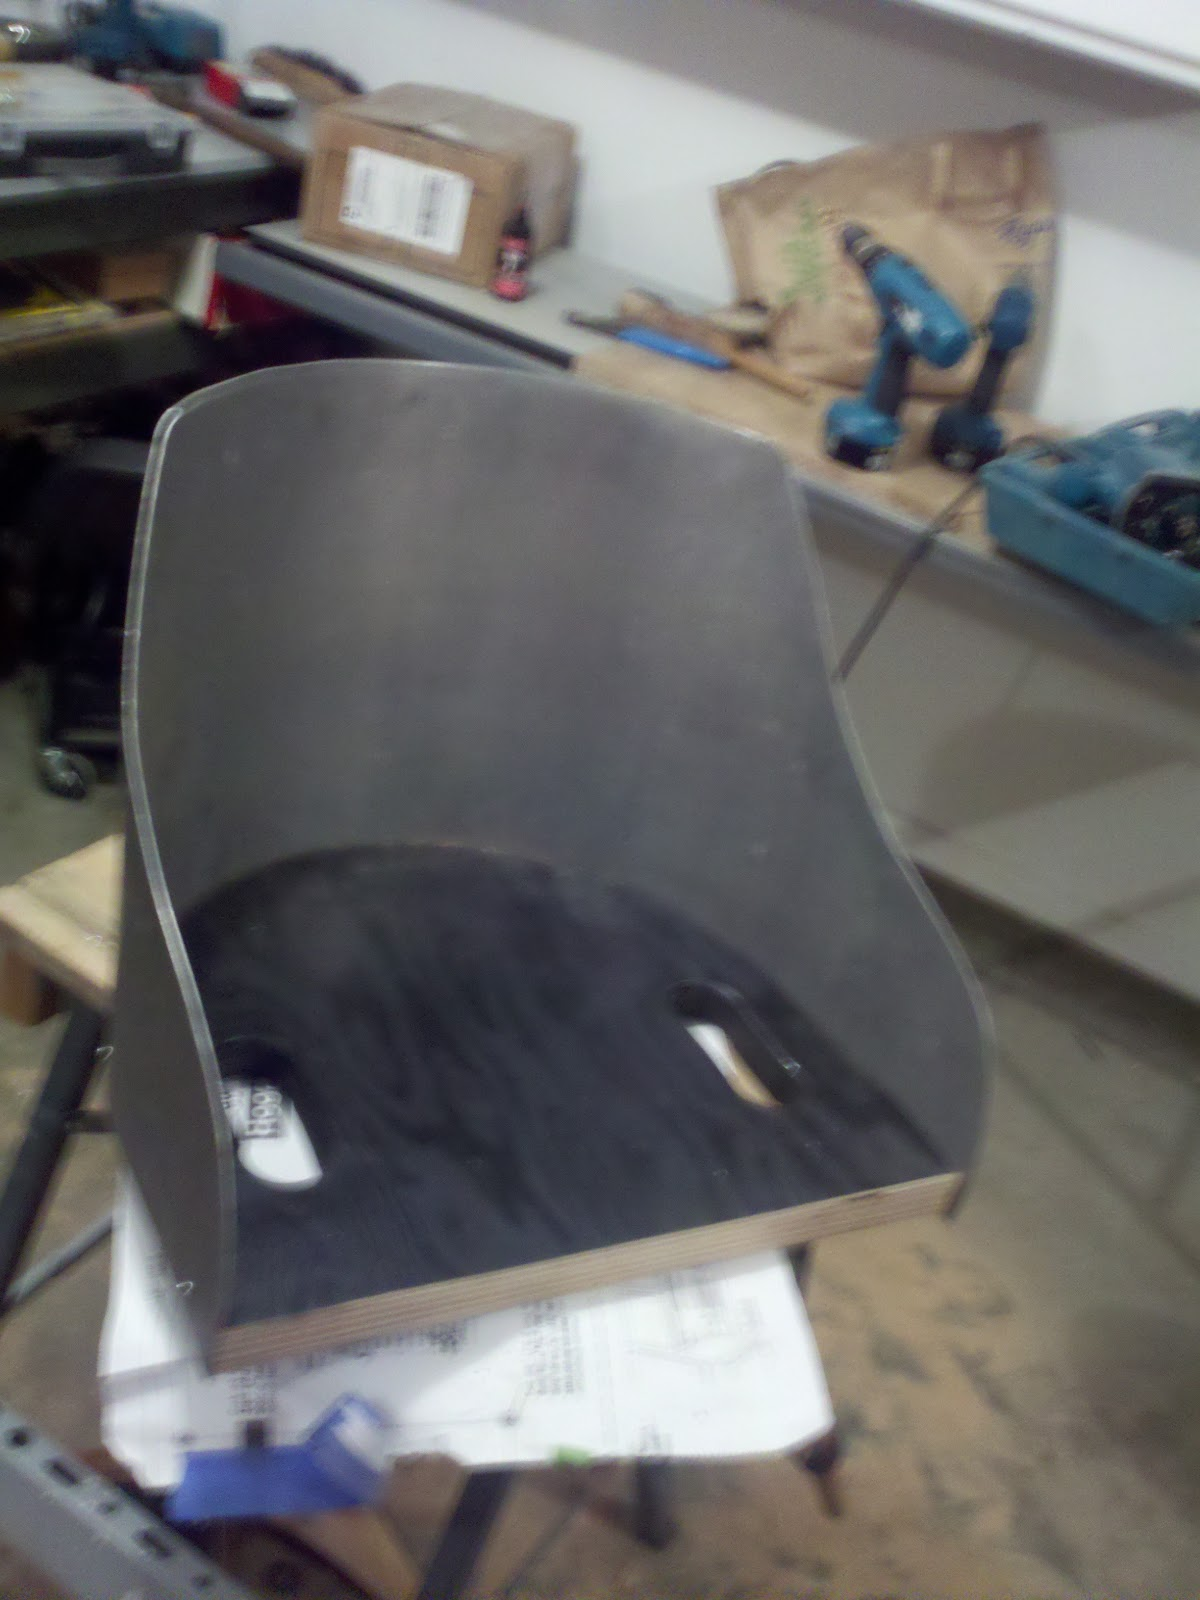 1922 Ford Model T Speedster Project Seats Since The Is So Similar To Next I Had Do Something About Sharp Edge Of Shells My Local Oreilly Auto Parts Guy Came Teh Rescue With A Flexible Plastic Door